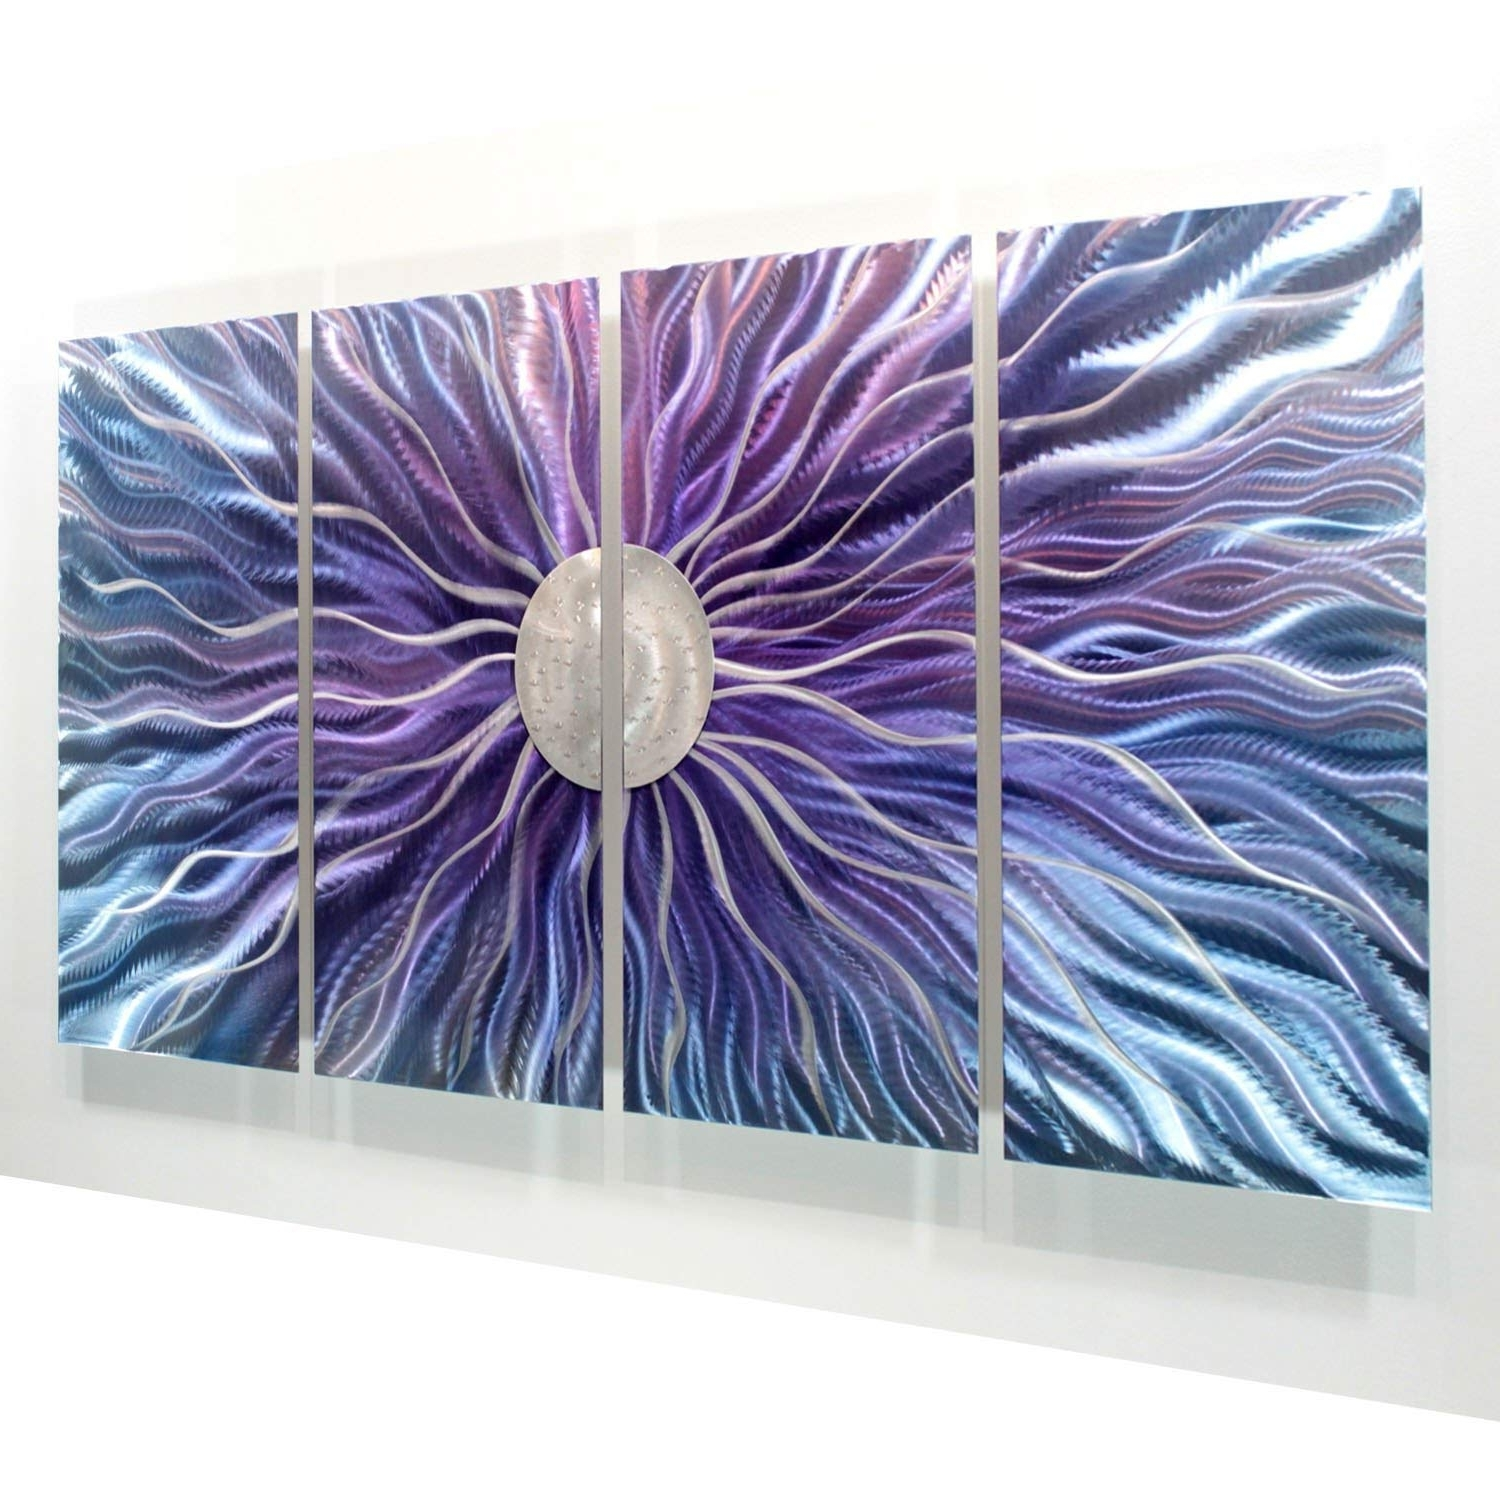 Most Recently Released Purple Wall Art Intended For Amazon: Large Blue, Purple, And Silver Metal Wall Art Painting (View 5 of 15)